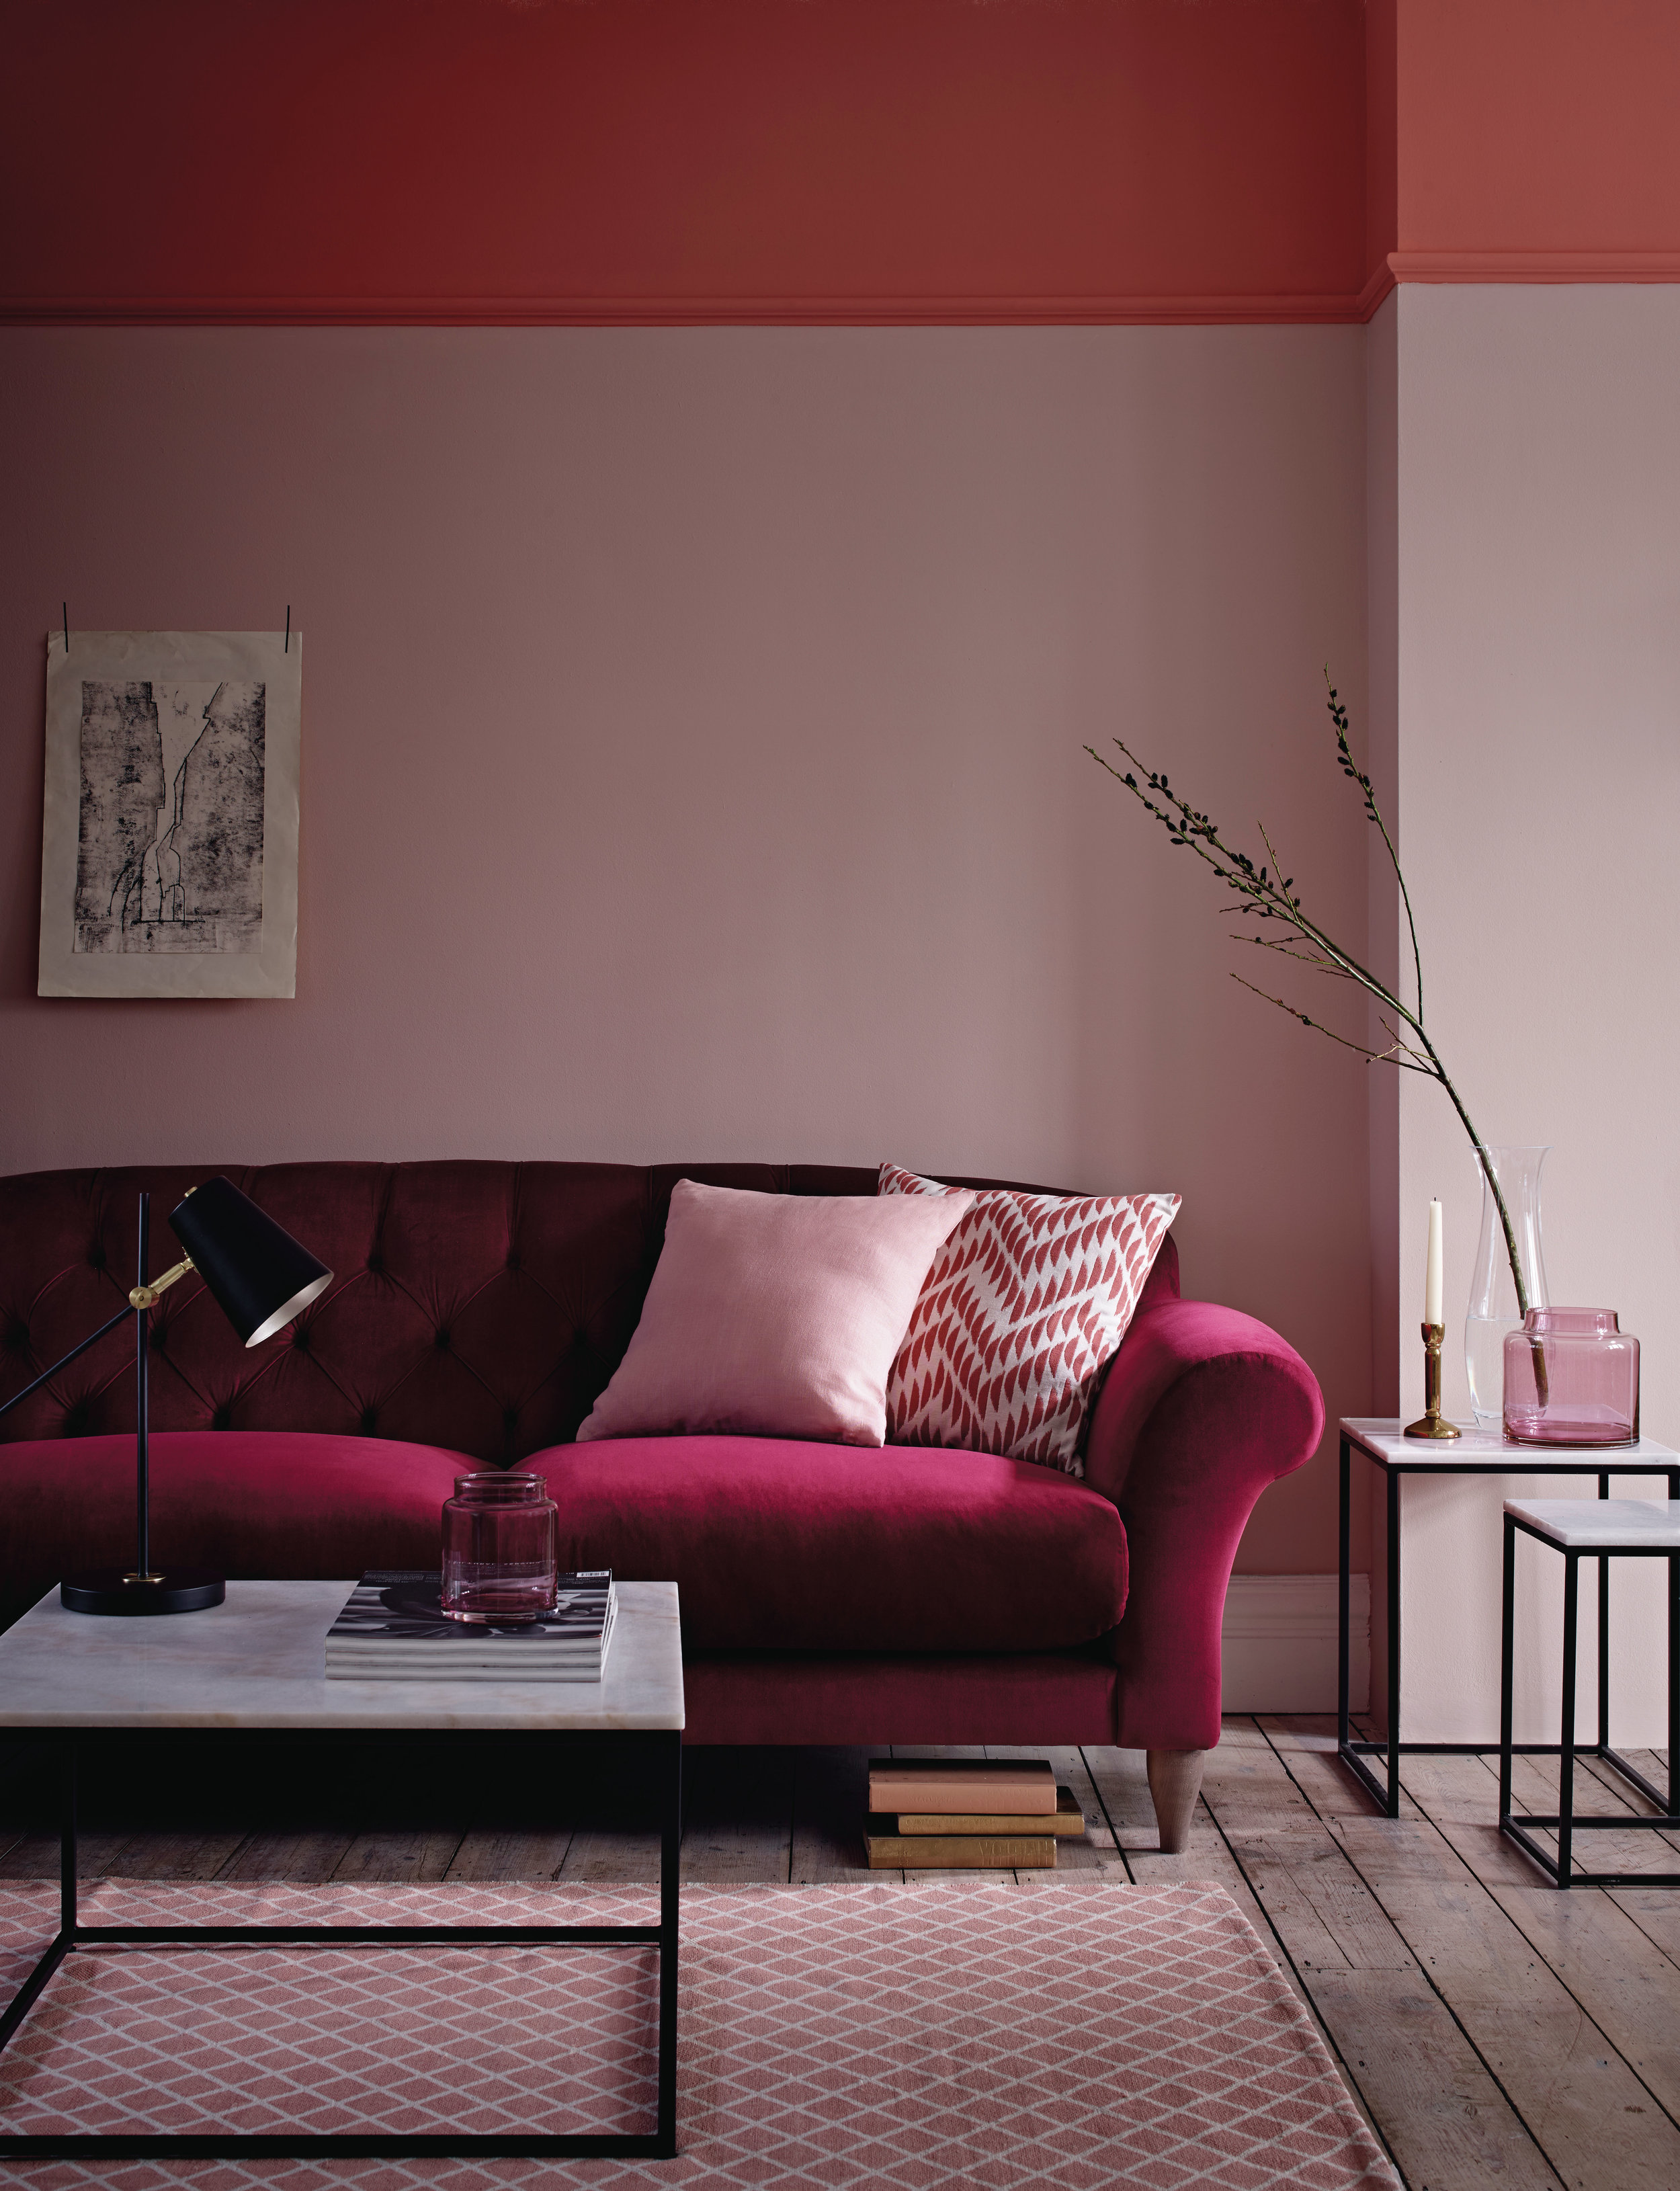 Velvet Sofas - A luxury, lounging staple, the velvet sofa is the hero of any living room, and despite its luxe look, doesn't need to cost the earth. With a range of sizes and colours available, you should be able to find the perfect velvet sofa for you and your budget with ease. Opt for rich jewel tones for a real style statement, a bright shade for the ultimate hero piece (like the yellow velvet ROM sofa seen here) or keep it neutral with soft shades of grey.Marks & Spencer Newbury Sofa in Gosford Velvet Deep Red: £1499.00